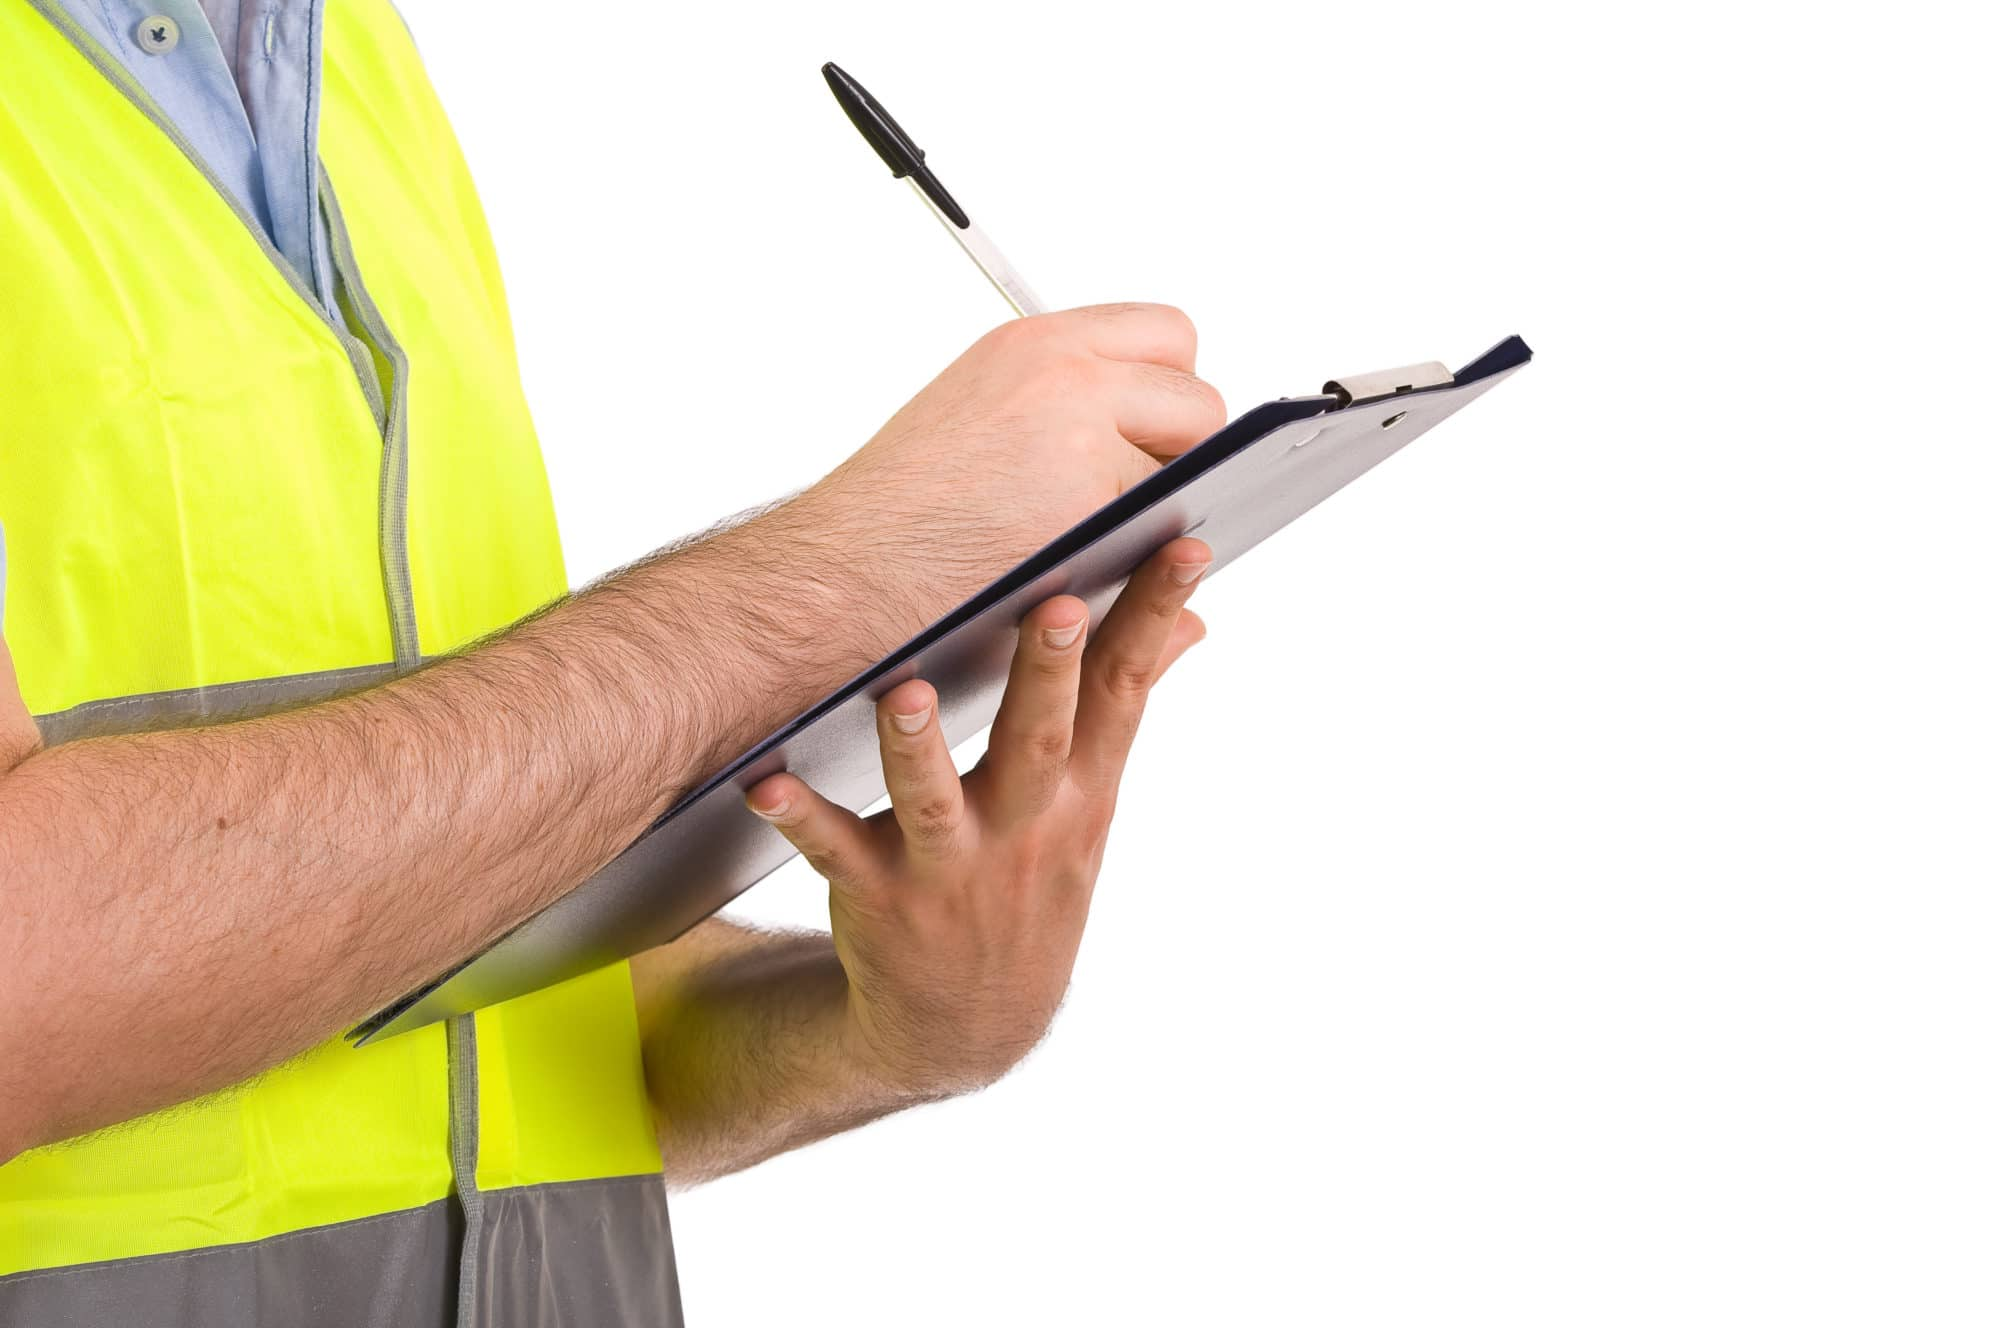 Draft a list of your home repairs and renovations